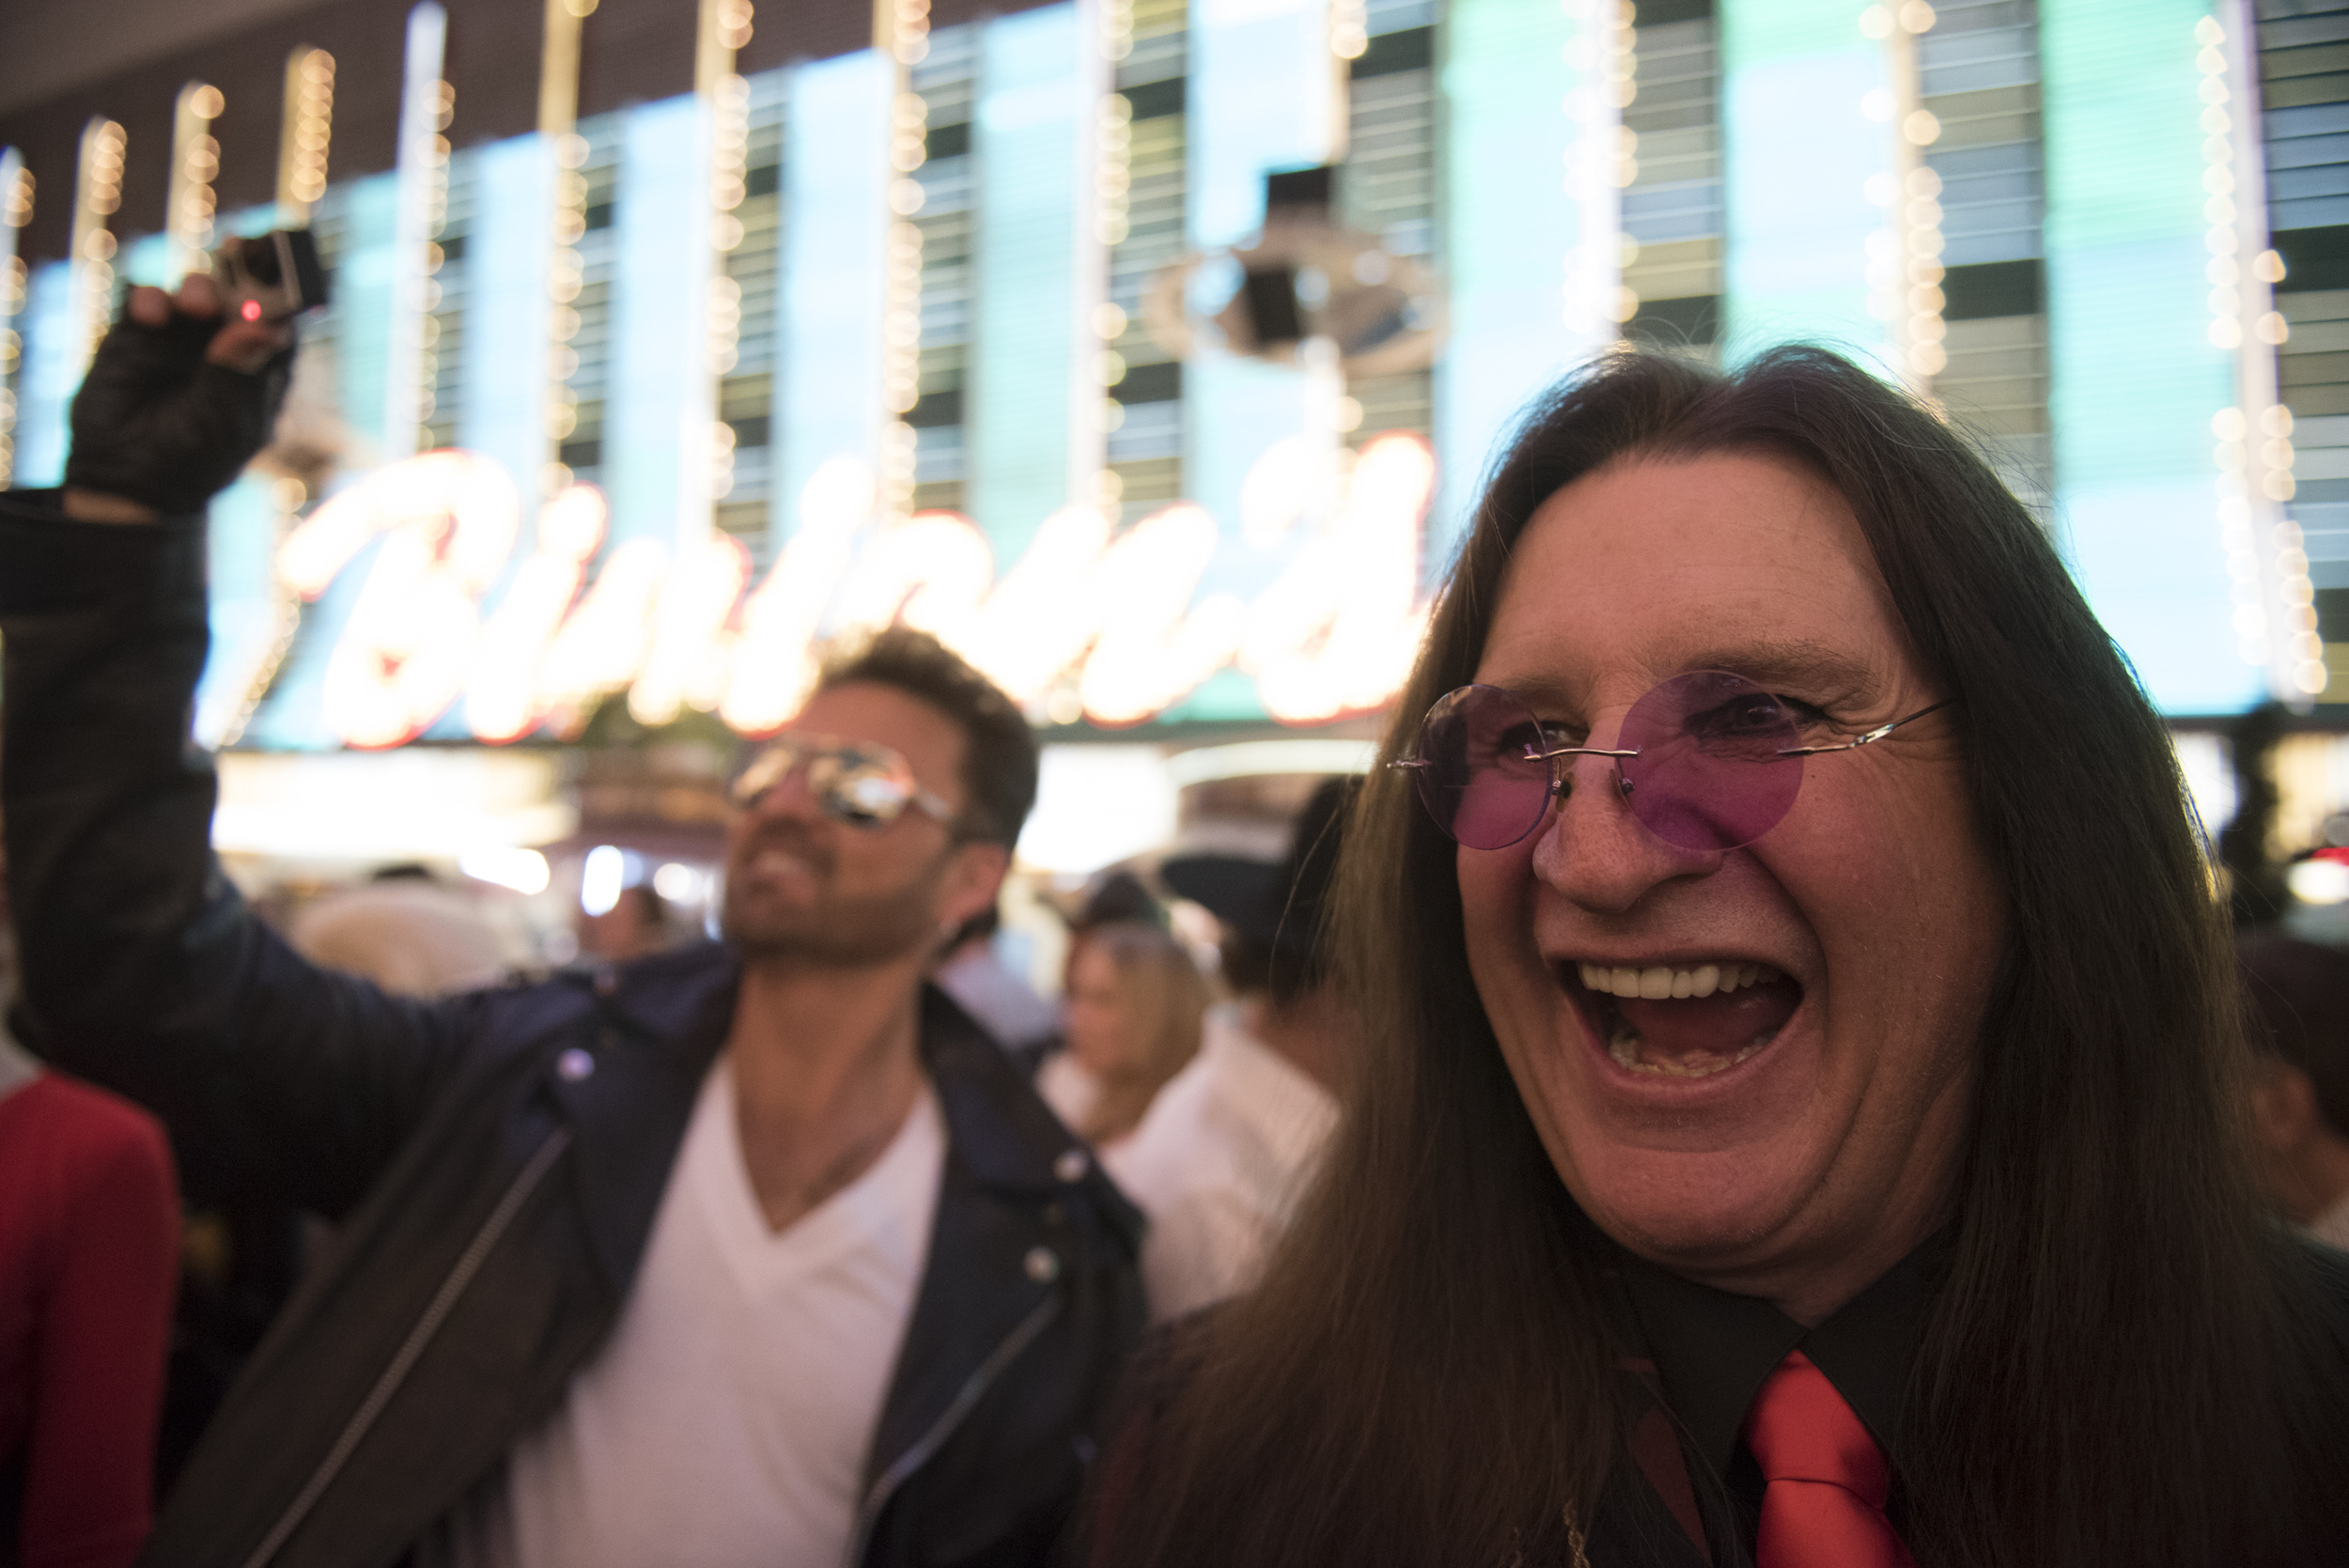 Ozzy Osbourne impersonator Don Rugg, right, and George Michael impersonator Bill Pantazis hang out during the red carpet event ahead of The Reel Awards at Golden Nugget Hotel Casino in Las Vegas Monday, Feb. 22, 2016. The Reel Awards are meant to be a humorous tribute to the real Academy Awards. Jason Ogulnik/Las Vegas Review-Journal